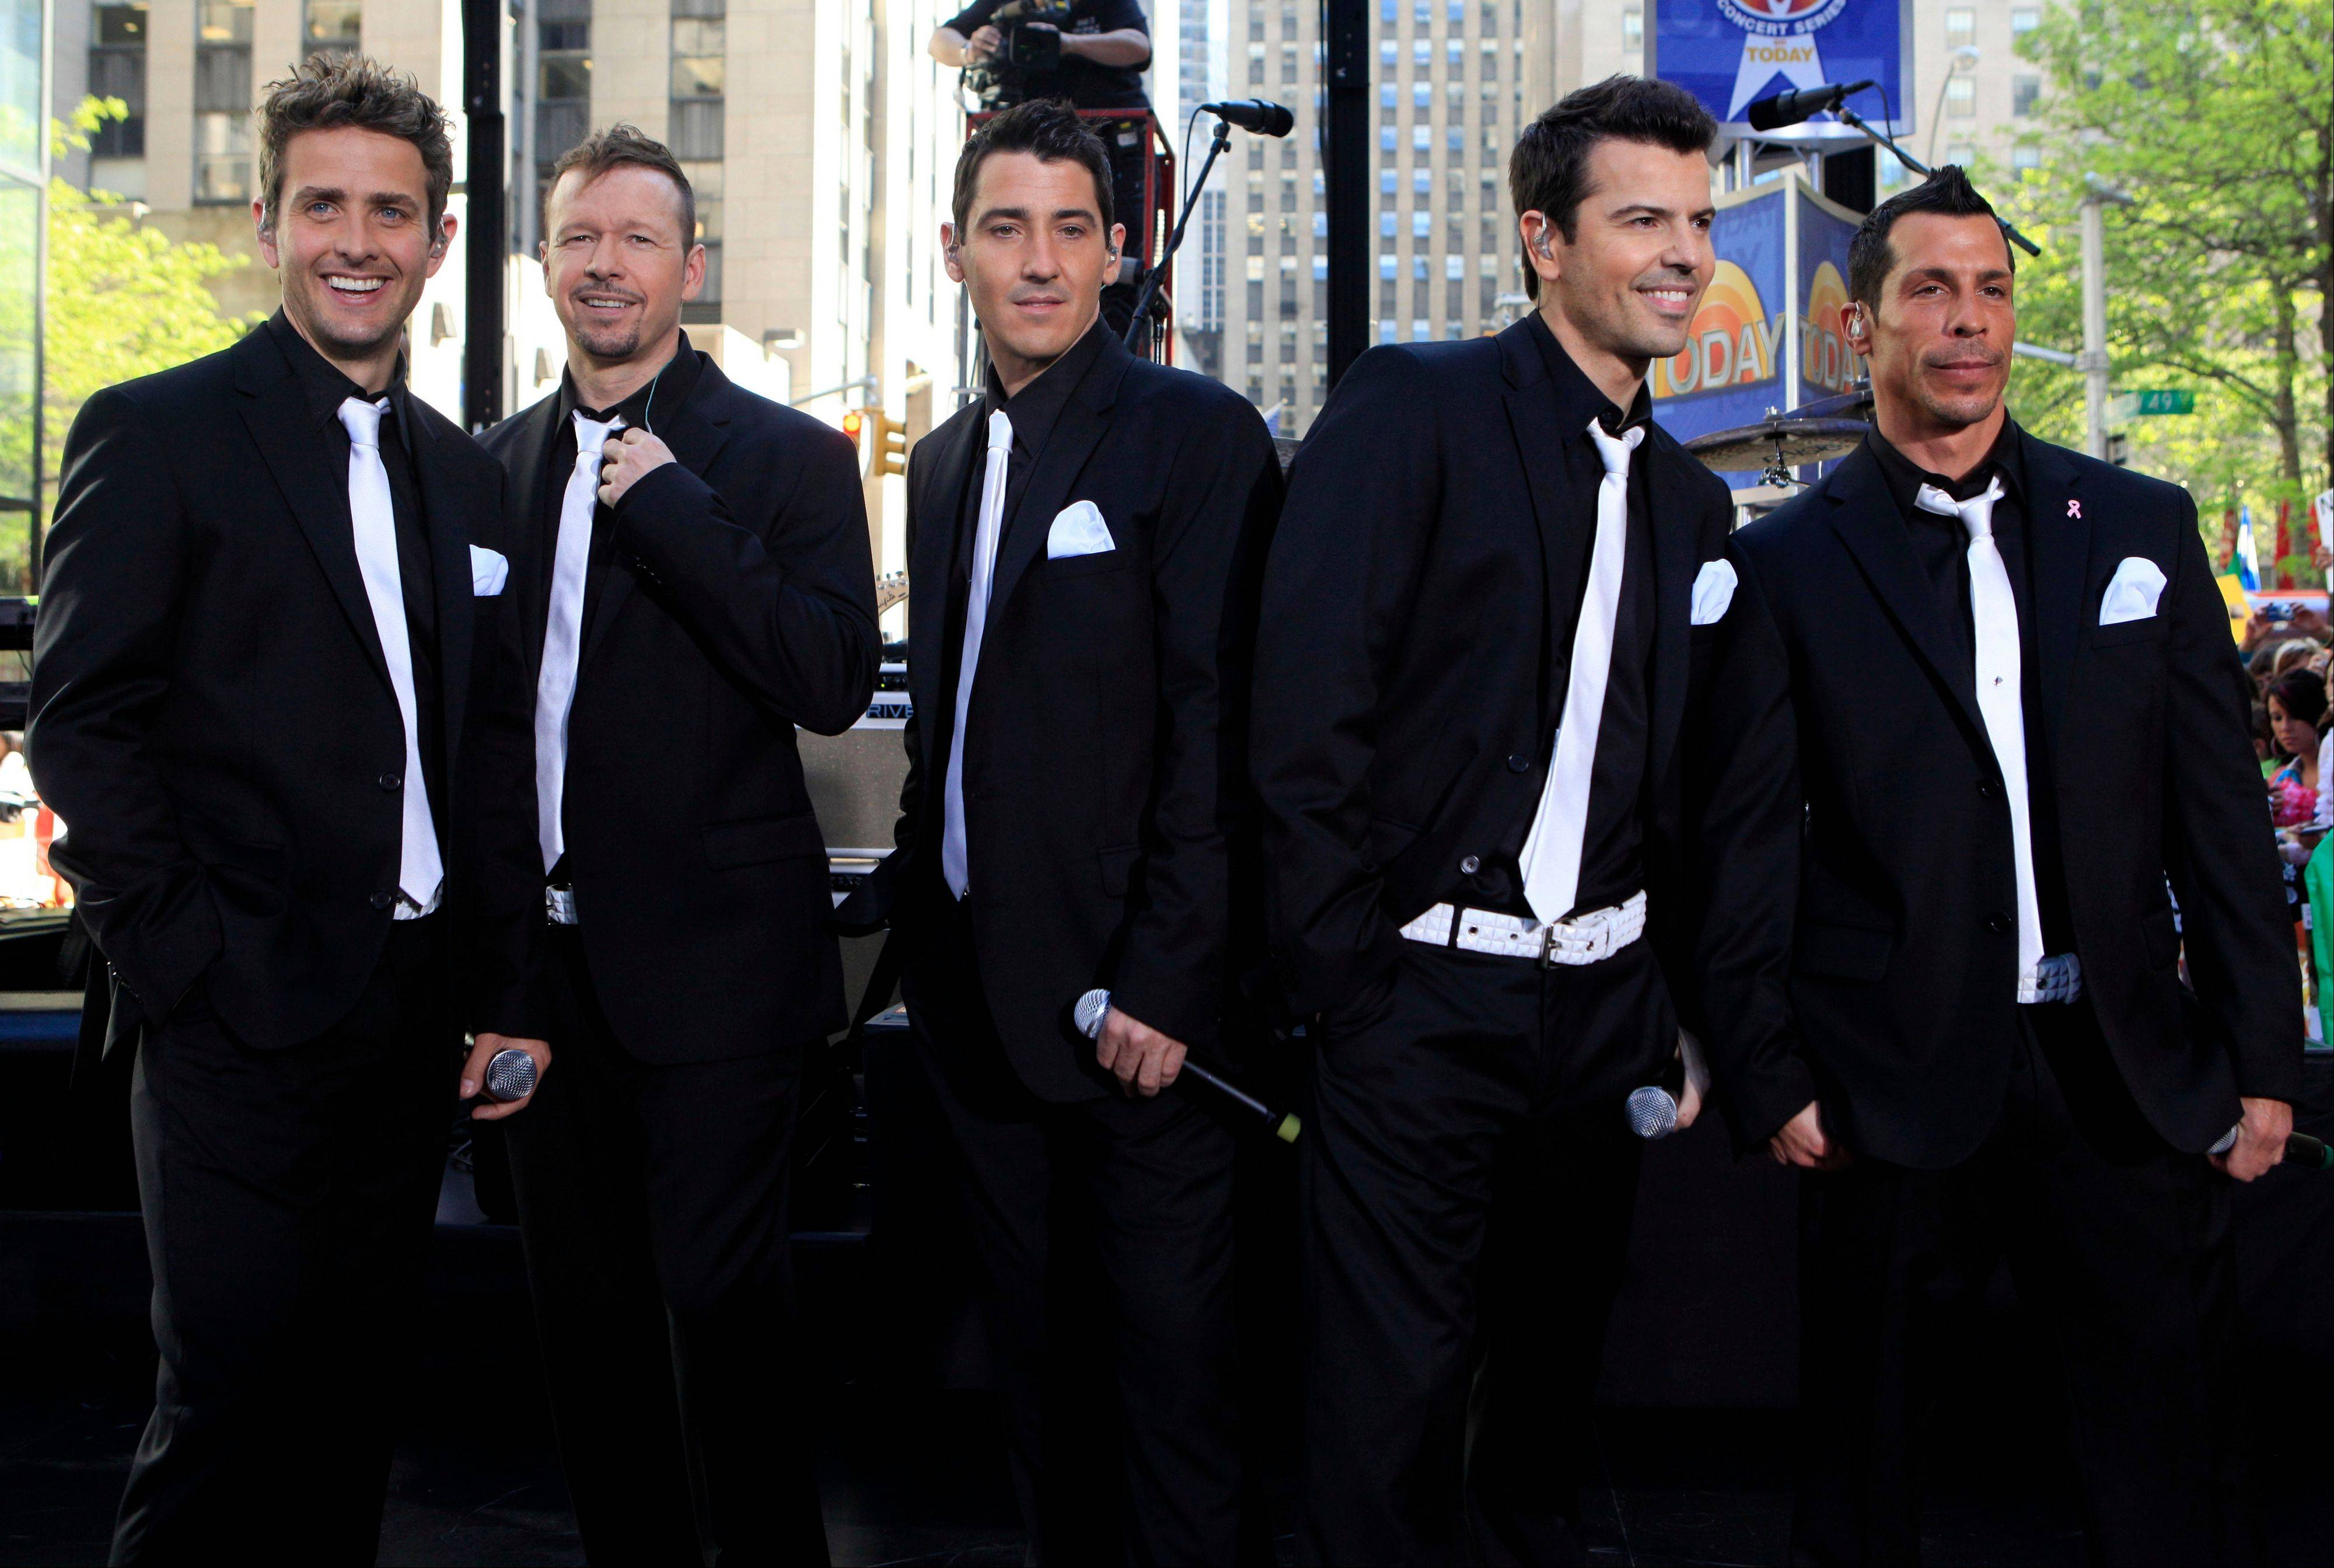 The New Kids on the Block will perform during a Boston Marathon benefit concert May 30. The show, at the TD Garden, will benefit One Fund � the collection of donations that will be distributed to the survivors of the April 15 bombings and the families of those killed in the attack.